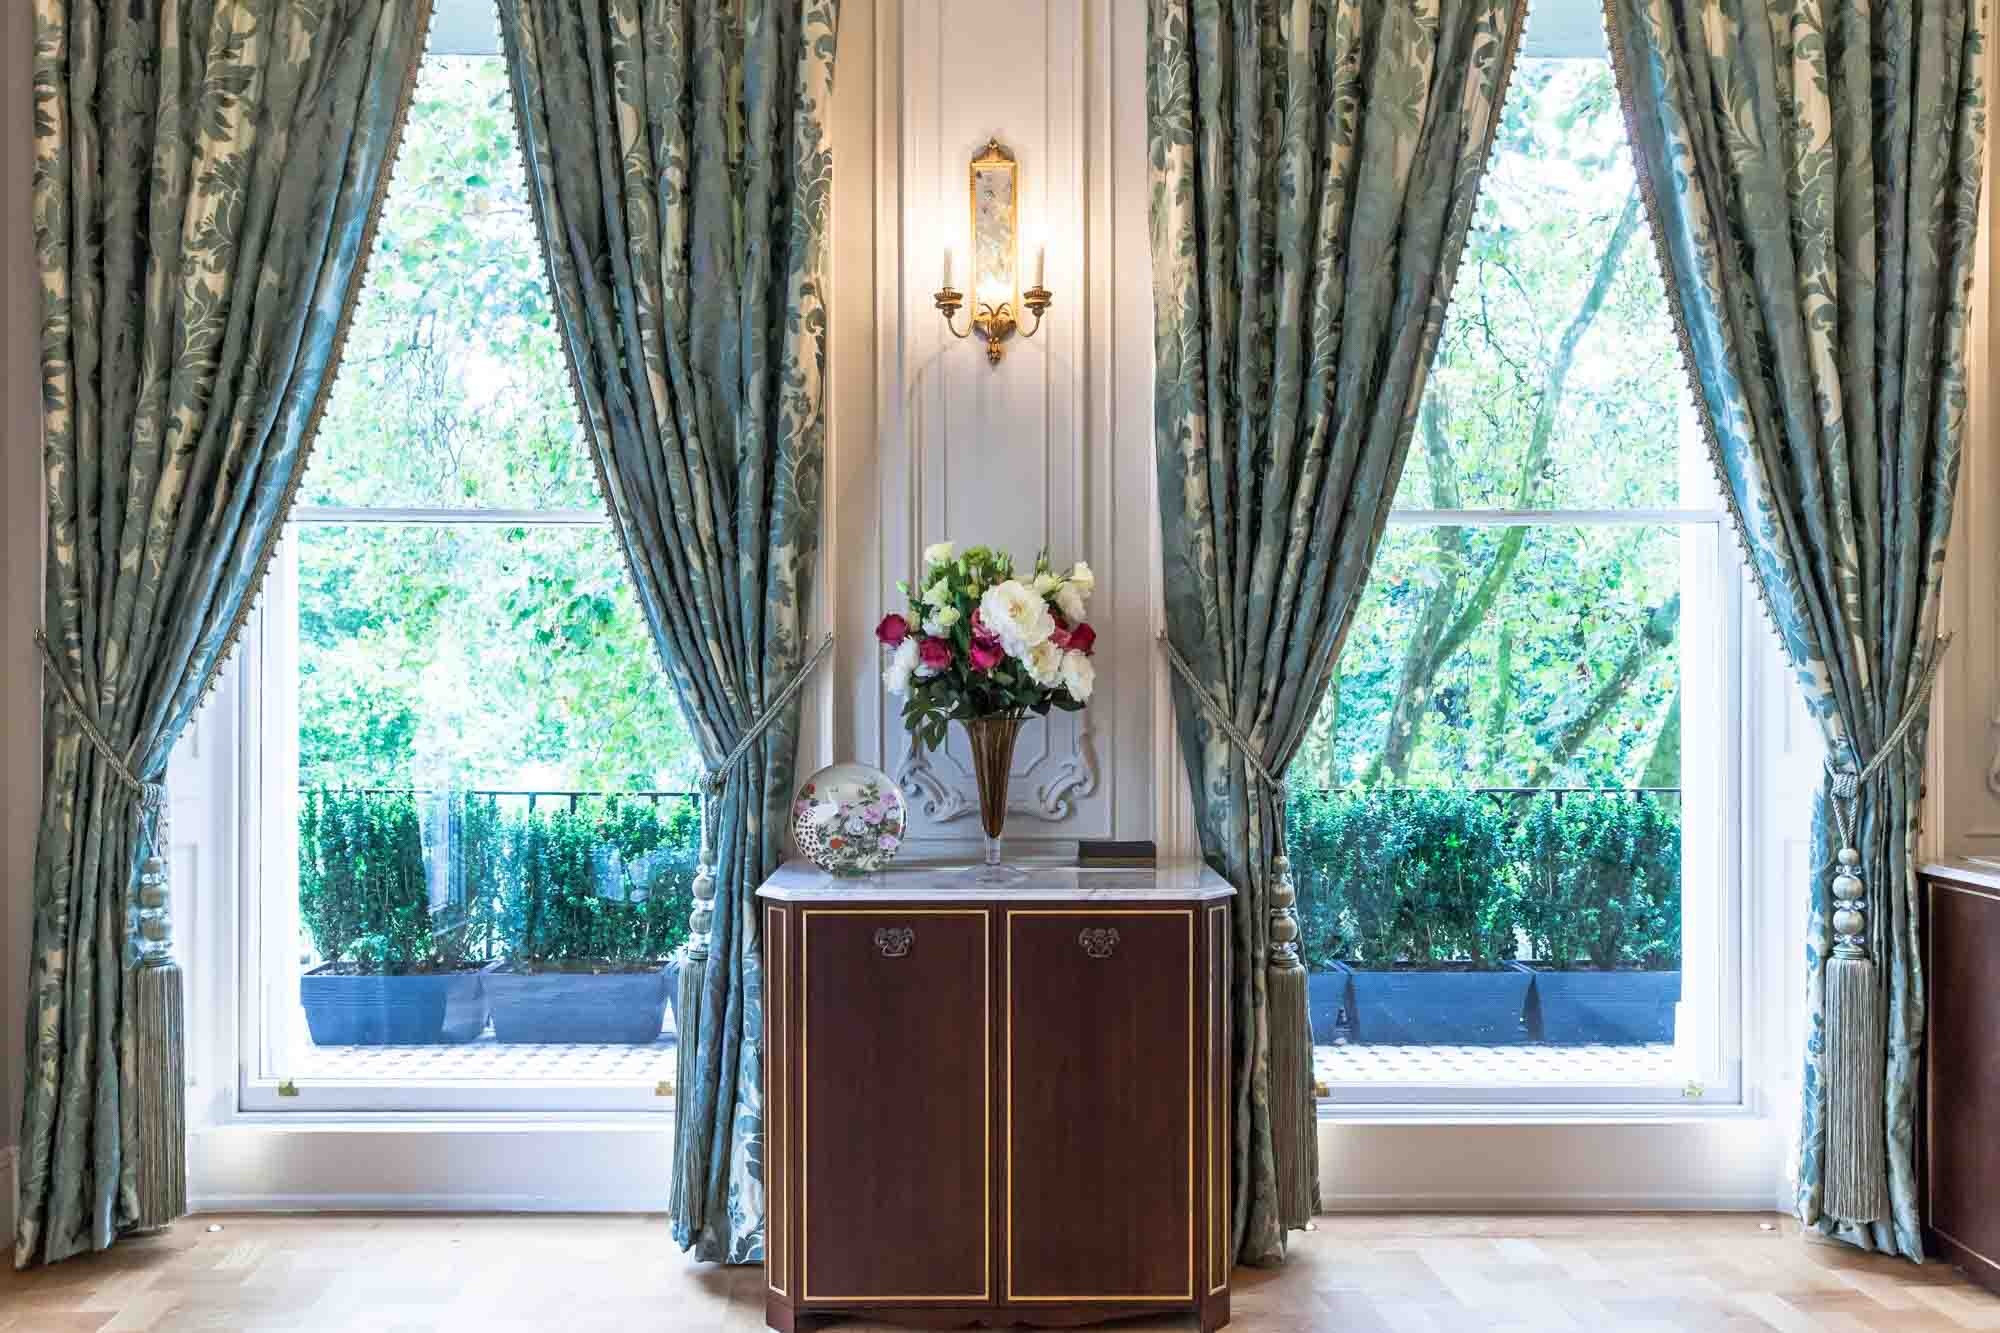 jonathan bond interior photographer, luxury cabinet by window, hyde park, london